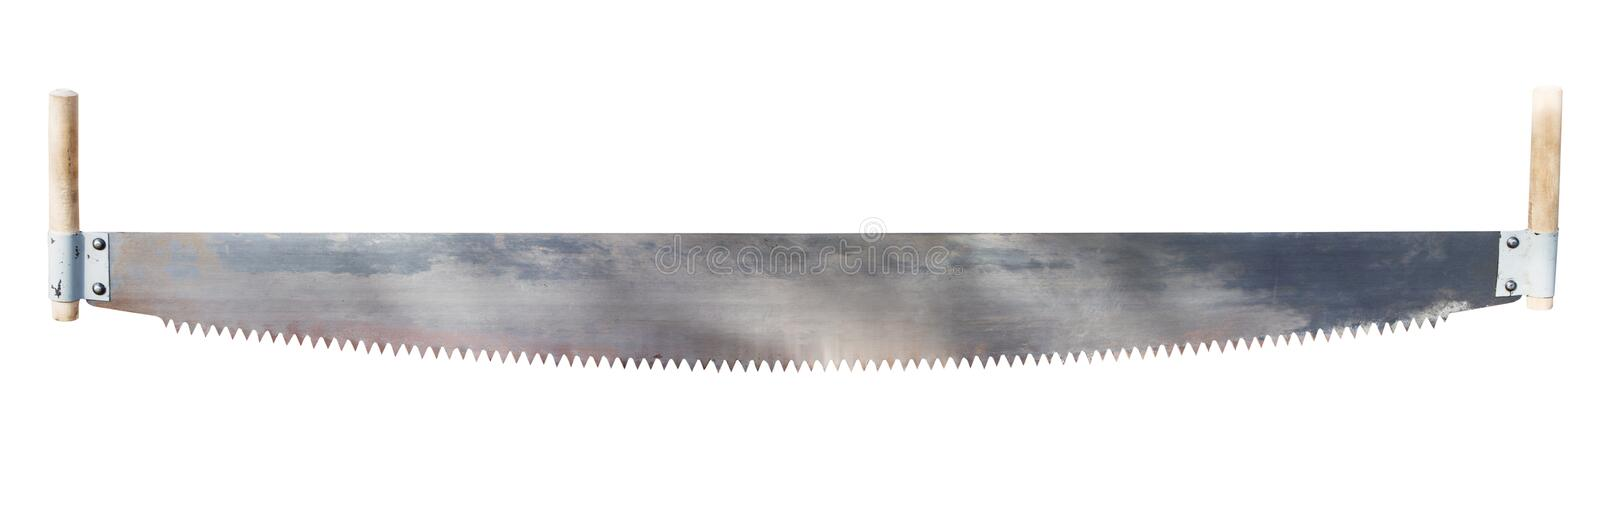 Two-handled saw isolated on white. Two handled saw isolated on white background royalty free stock photography